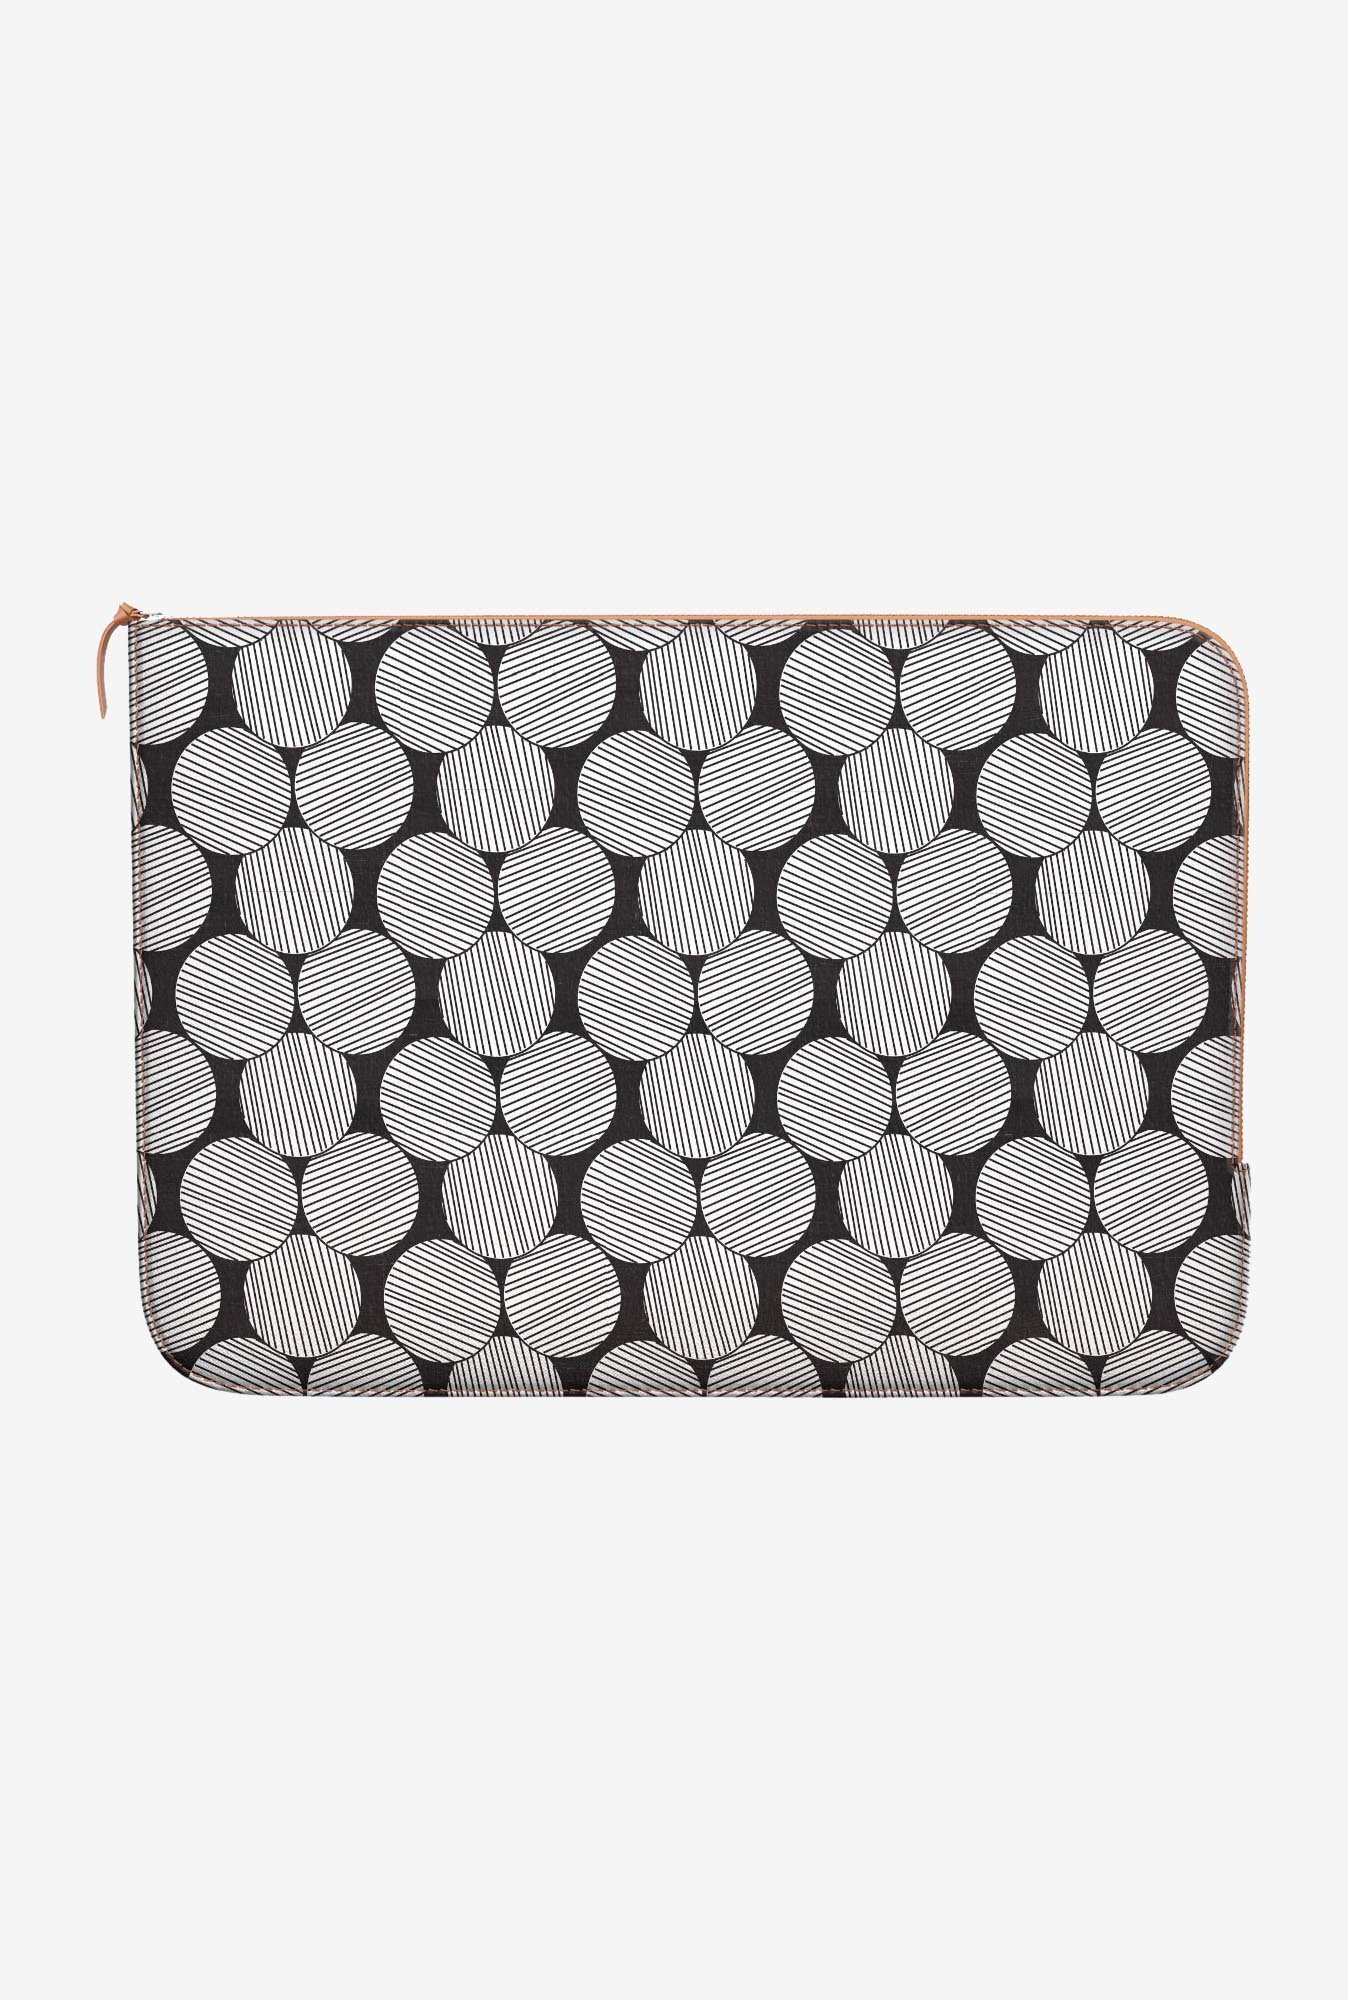 DailyObjects Lined Circles MacBook Air 11 Zippered Sleeve